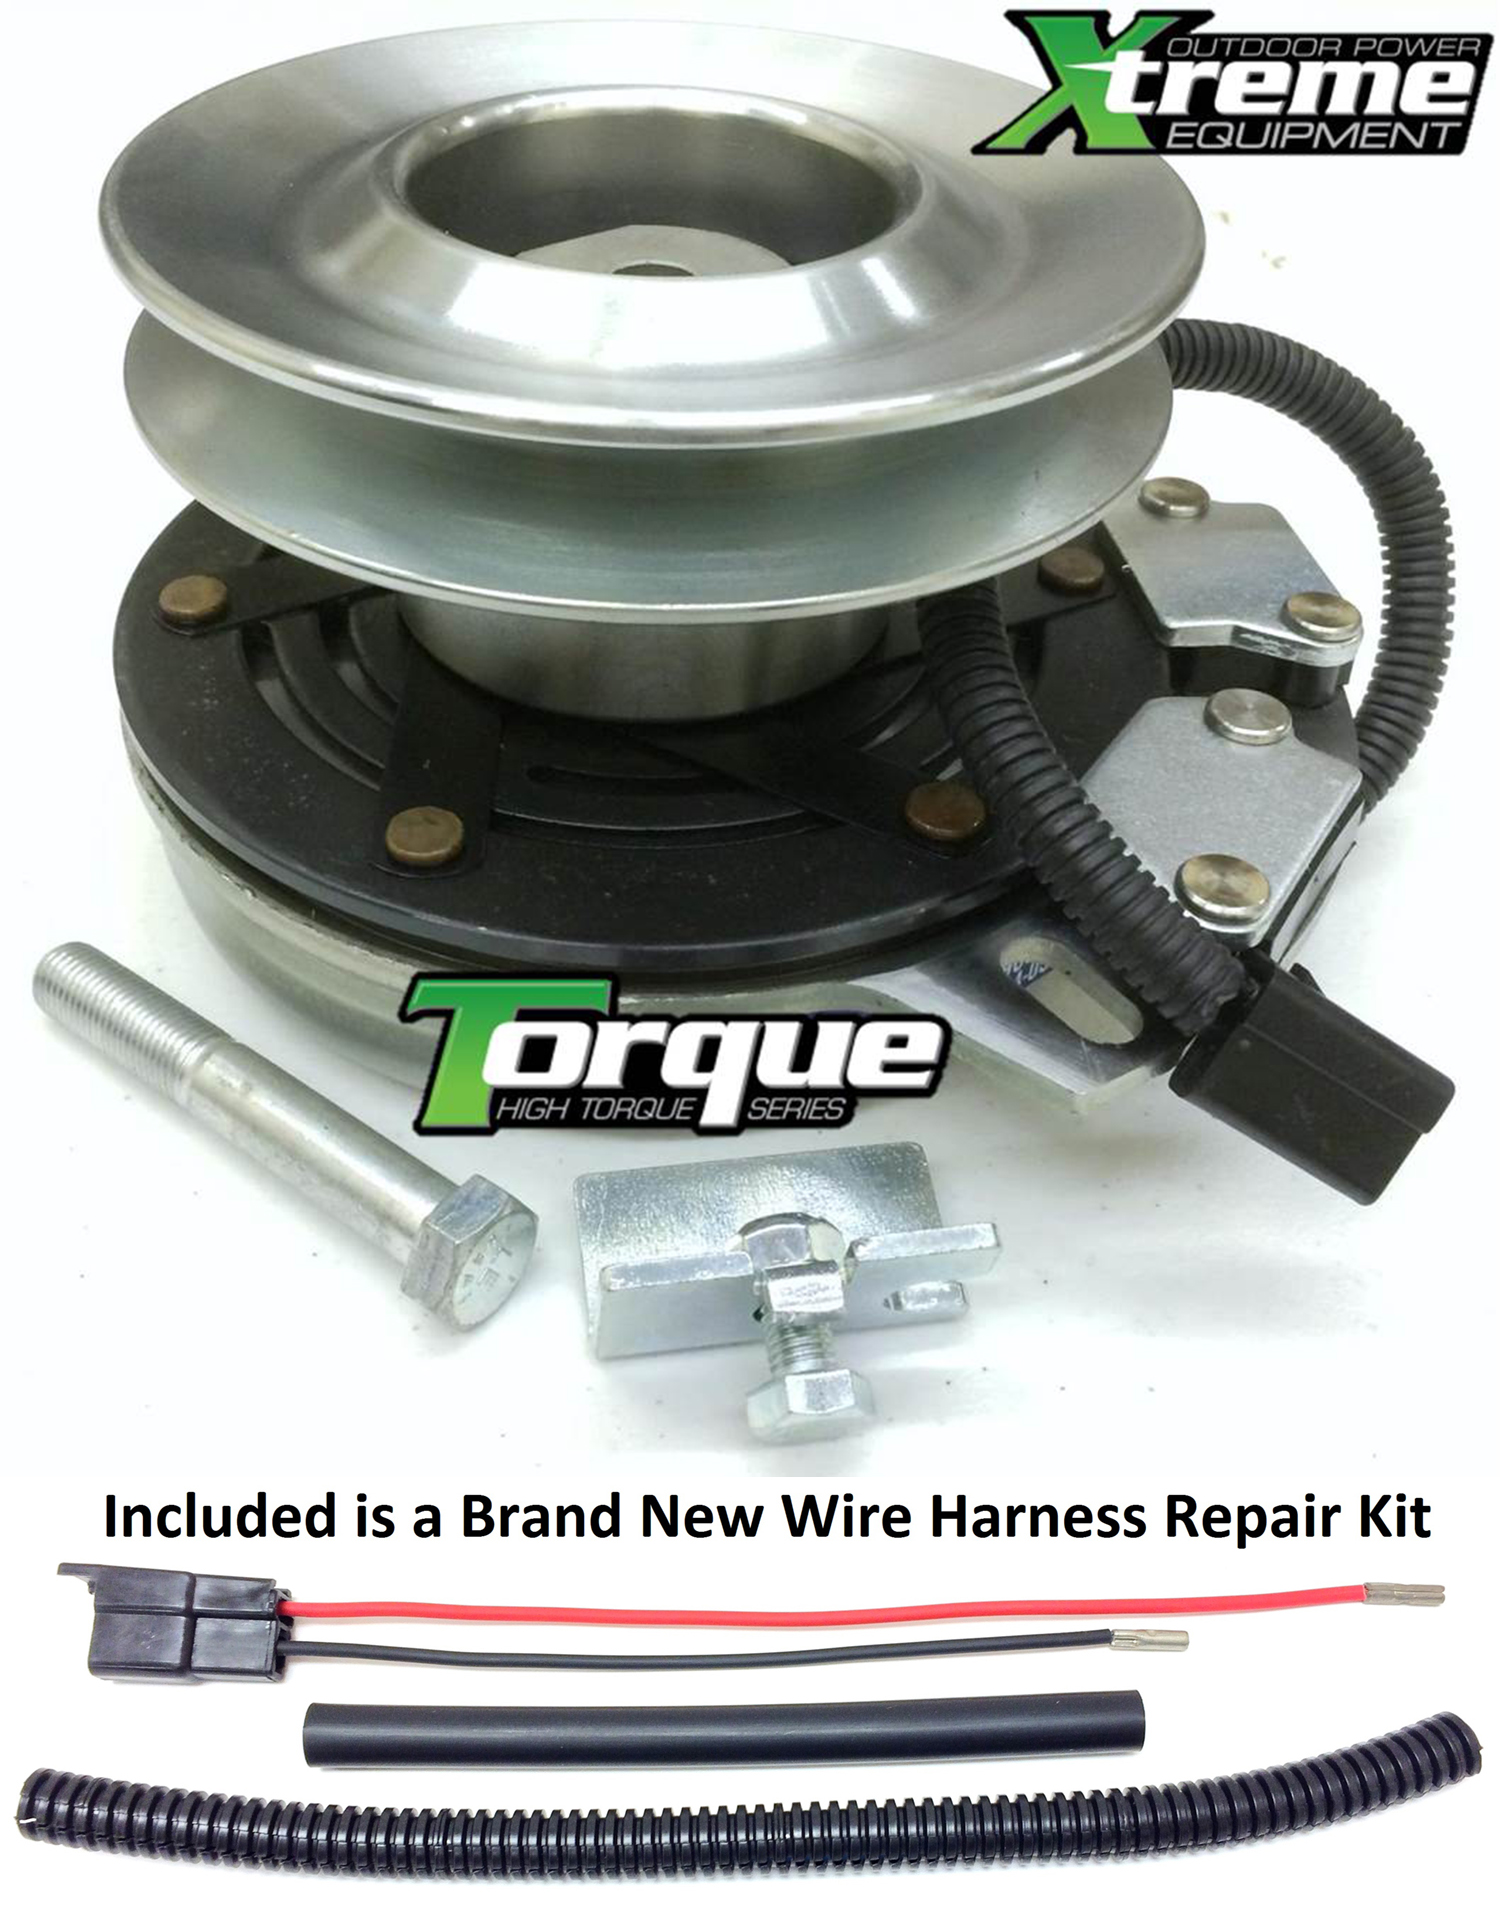 Bundle 2 Items Pto Electric Blade Clutch Wire Harness Repair Kit Vehicle Wiring Xtreme Replacement For Ogura Gt1a Mt09 Troy Bilt 917 04183 W